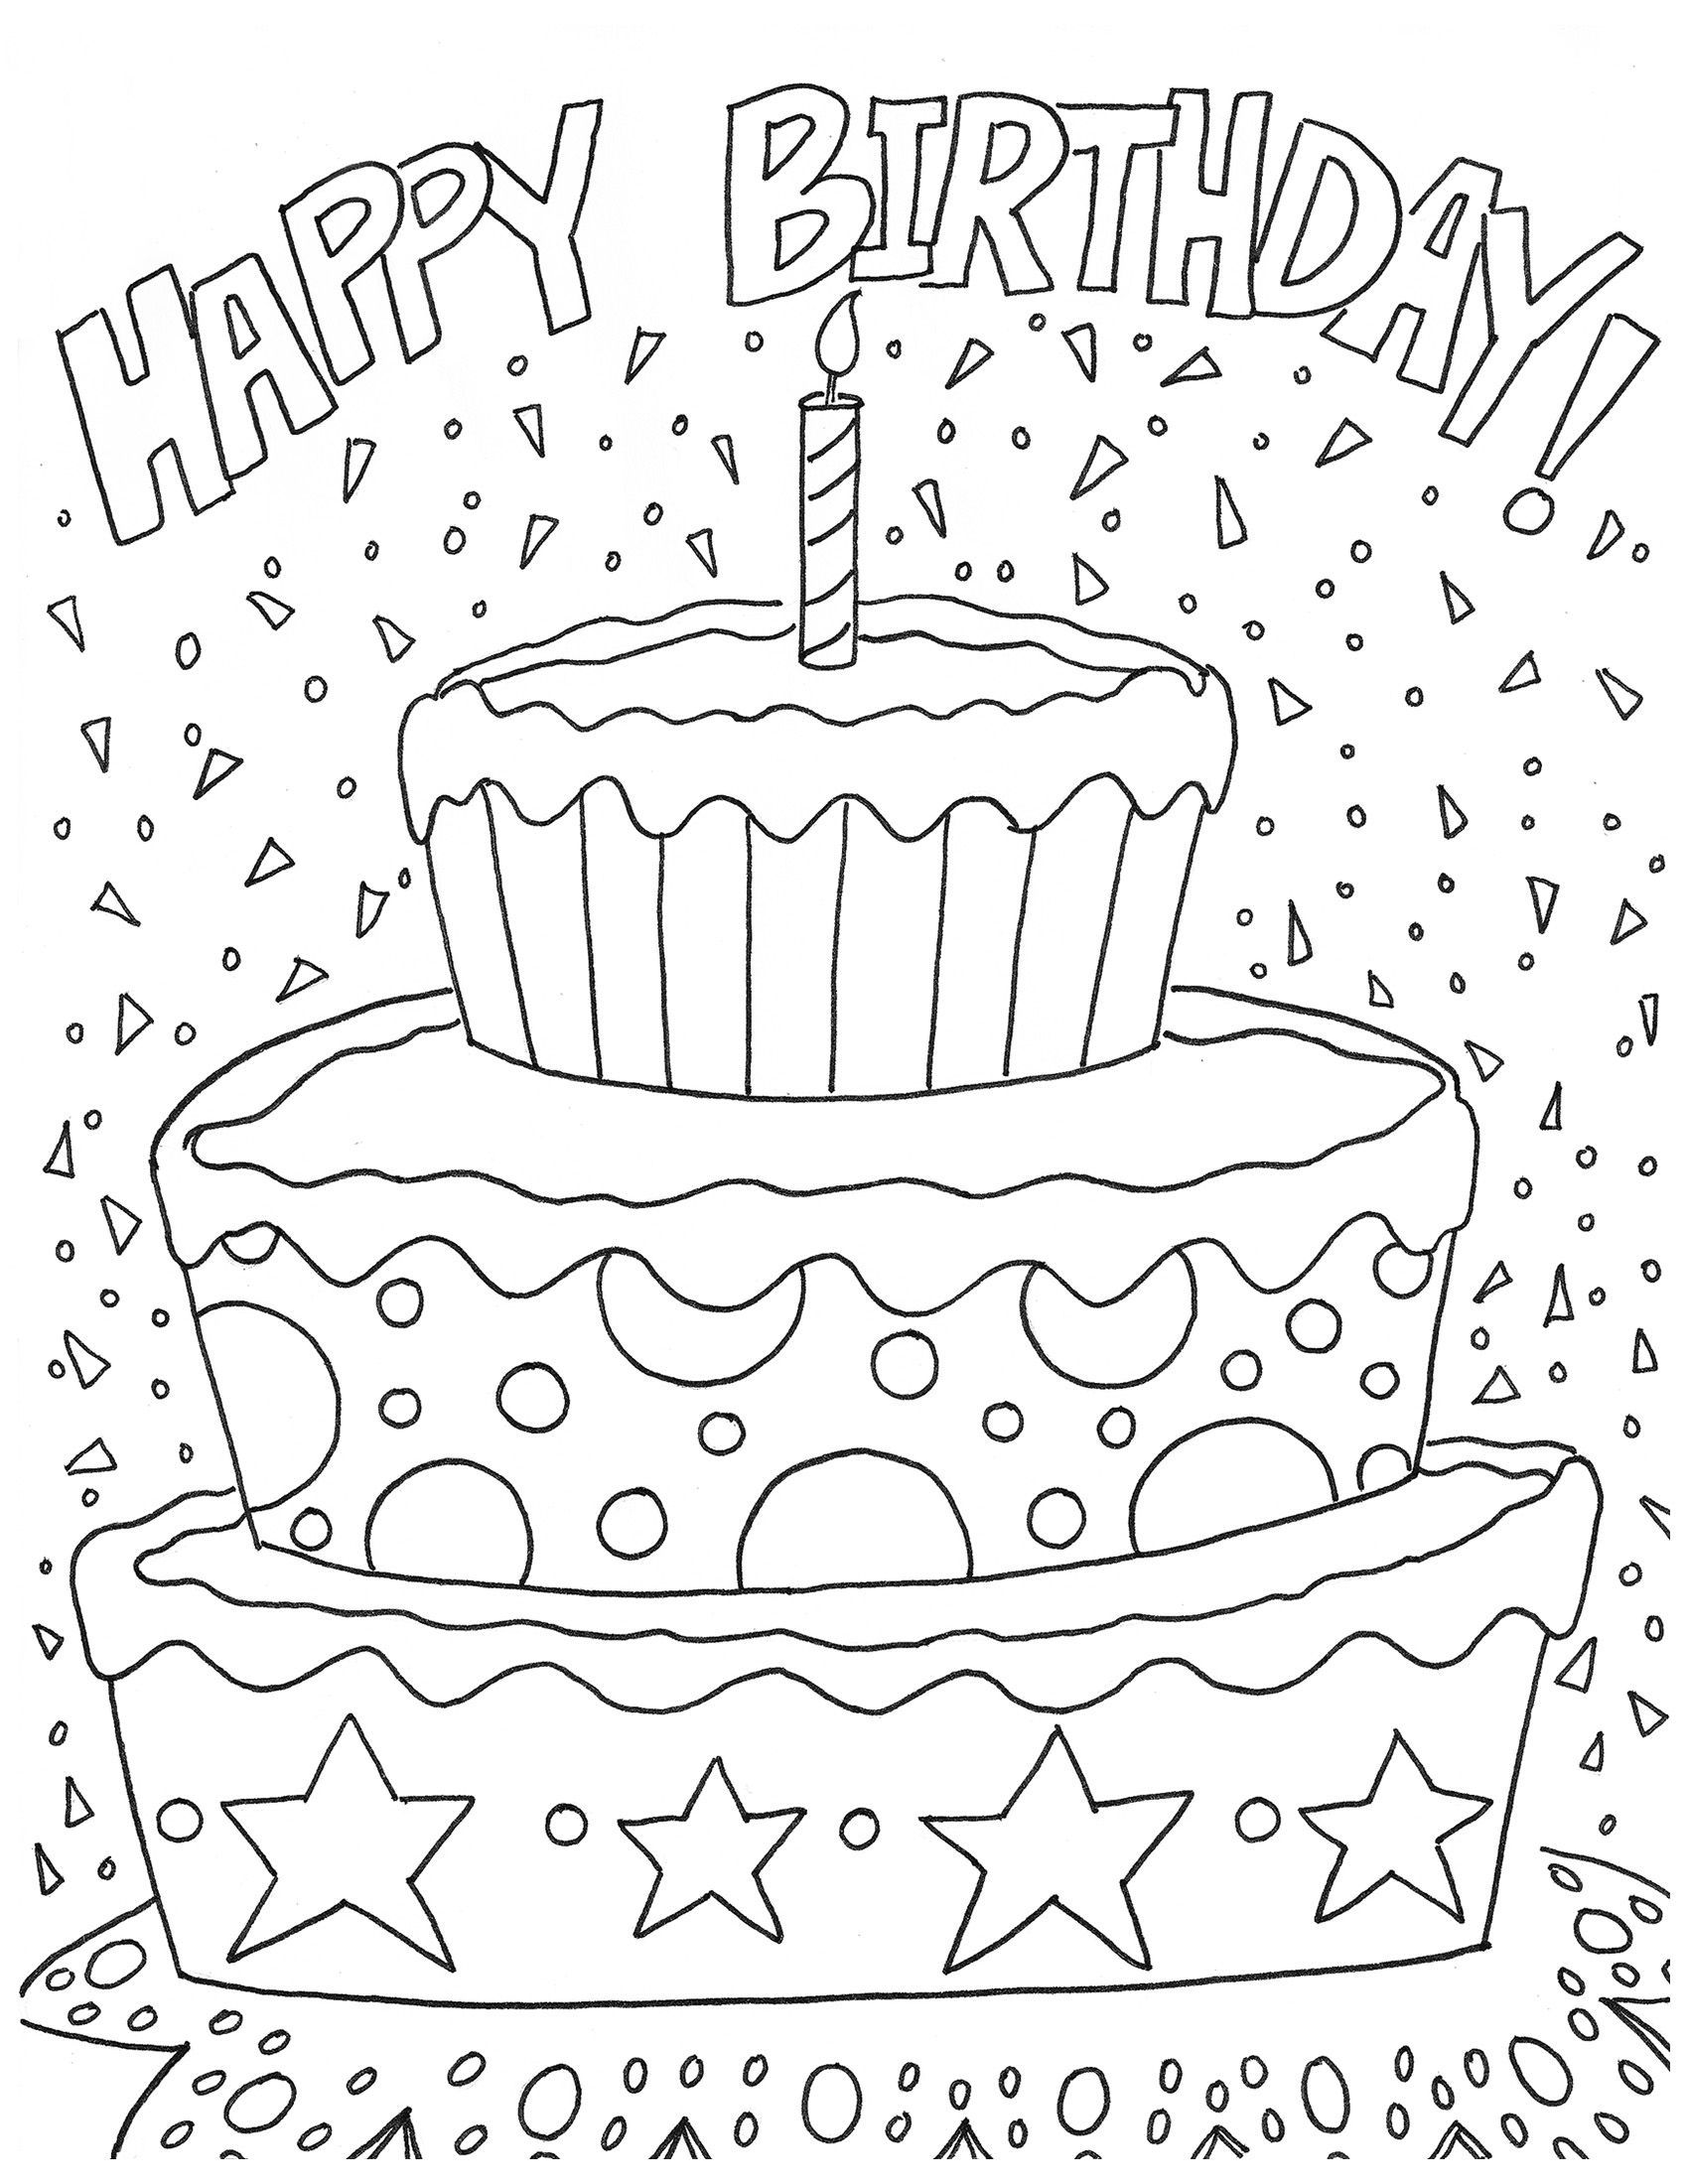 Coloring Pages For Moms Birthdays Preschool Mothers Day